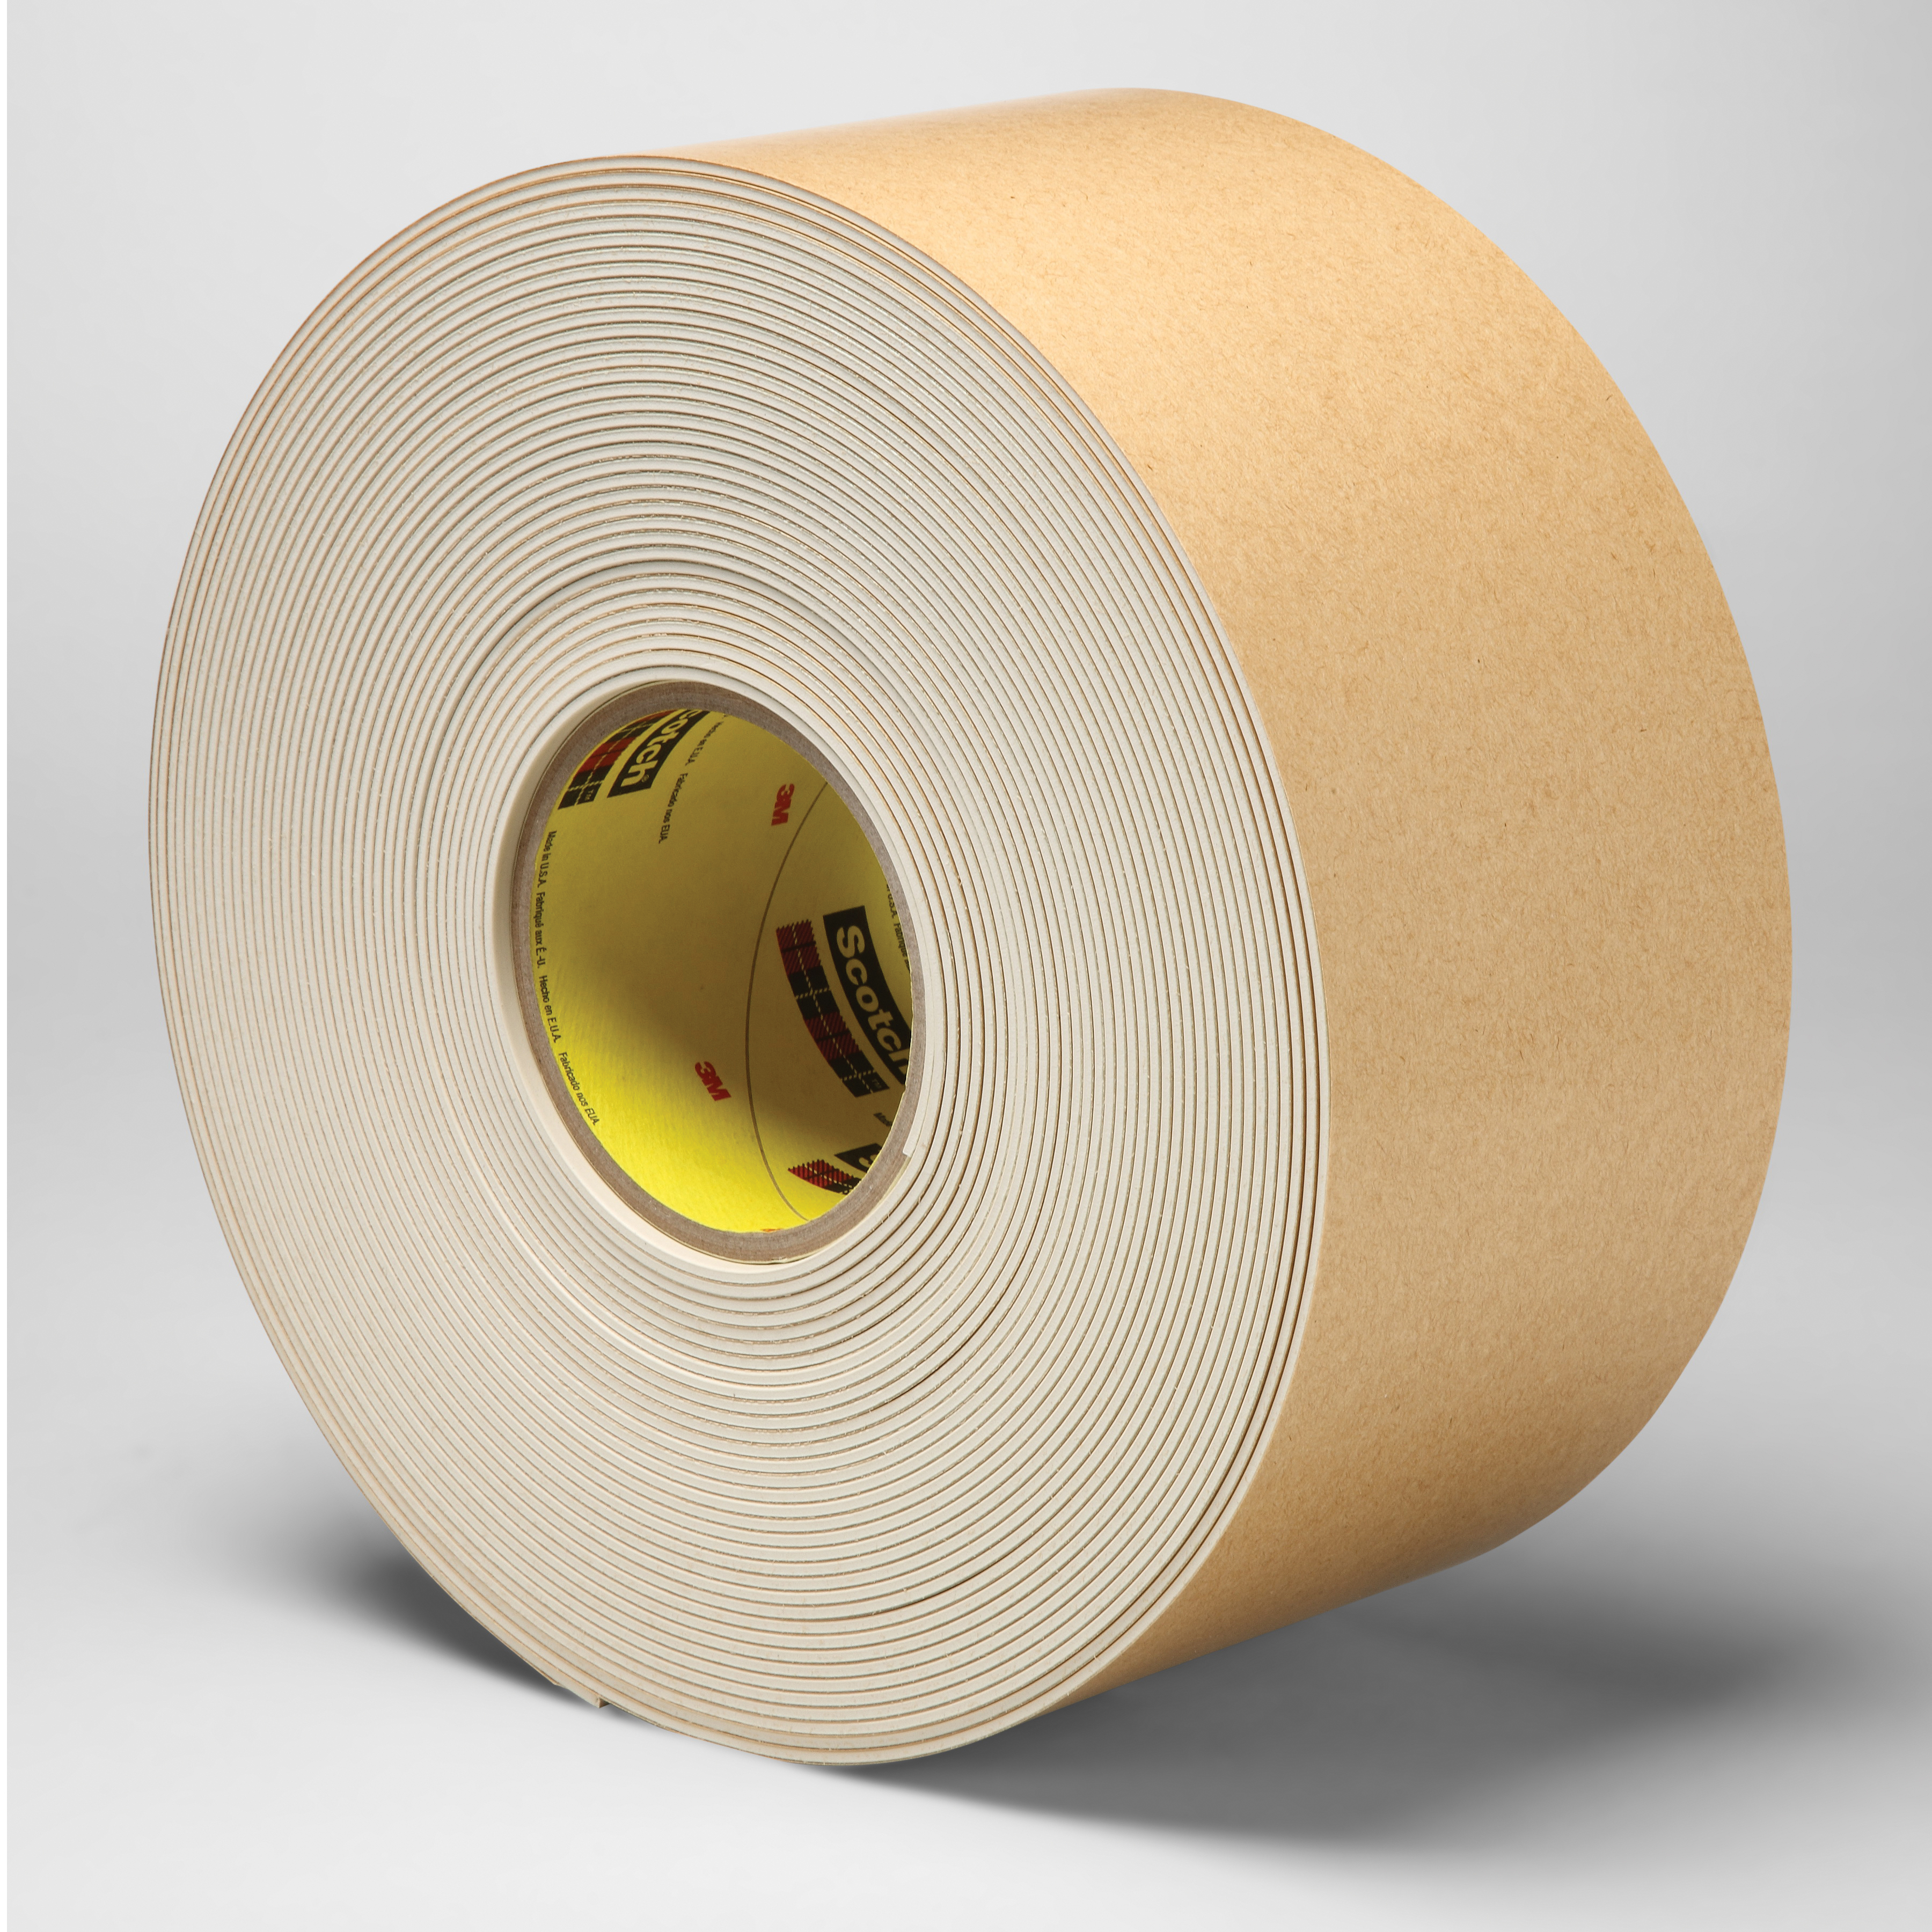 3M™ 021200-45336 Impact Stripping Tape, 20 yd L x 4 in W, 82 mil THK, Acrylic Adhesive, Rubber Backing